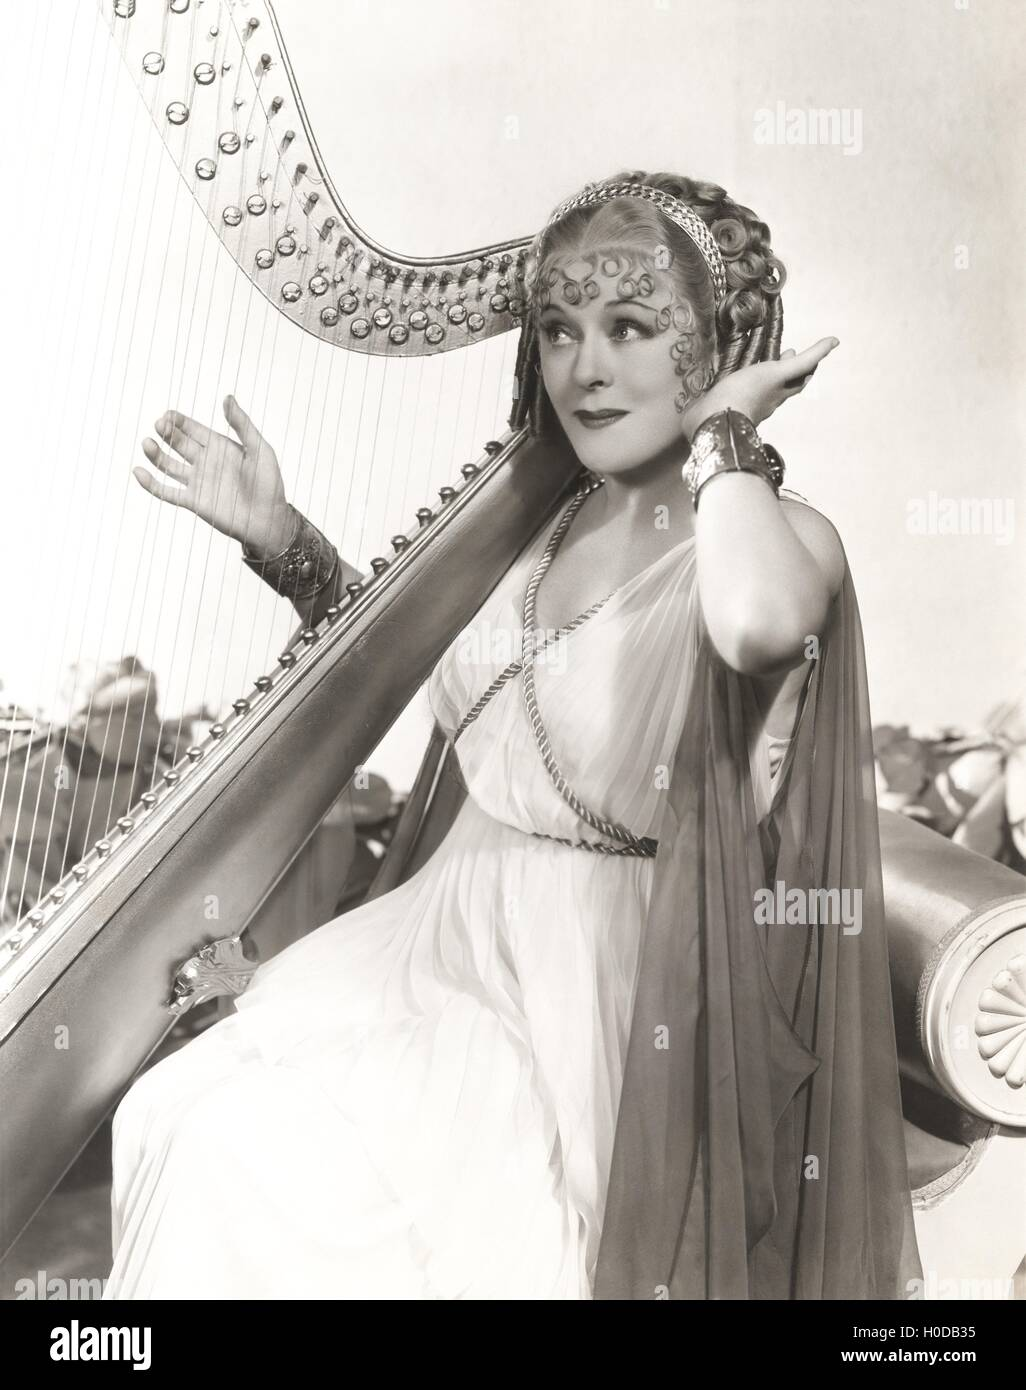 Woman in ancient Greek costume playing harp Stock Photo